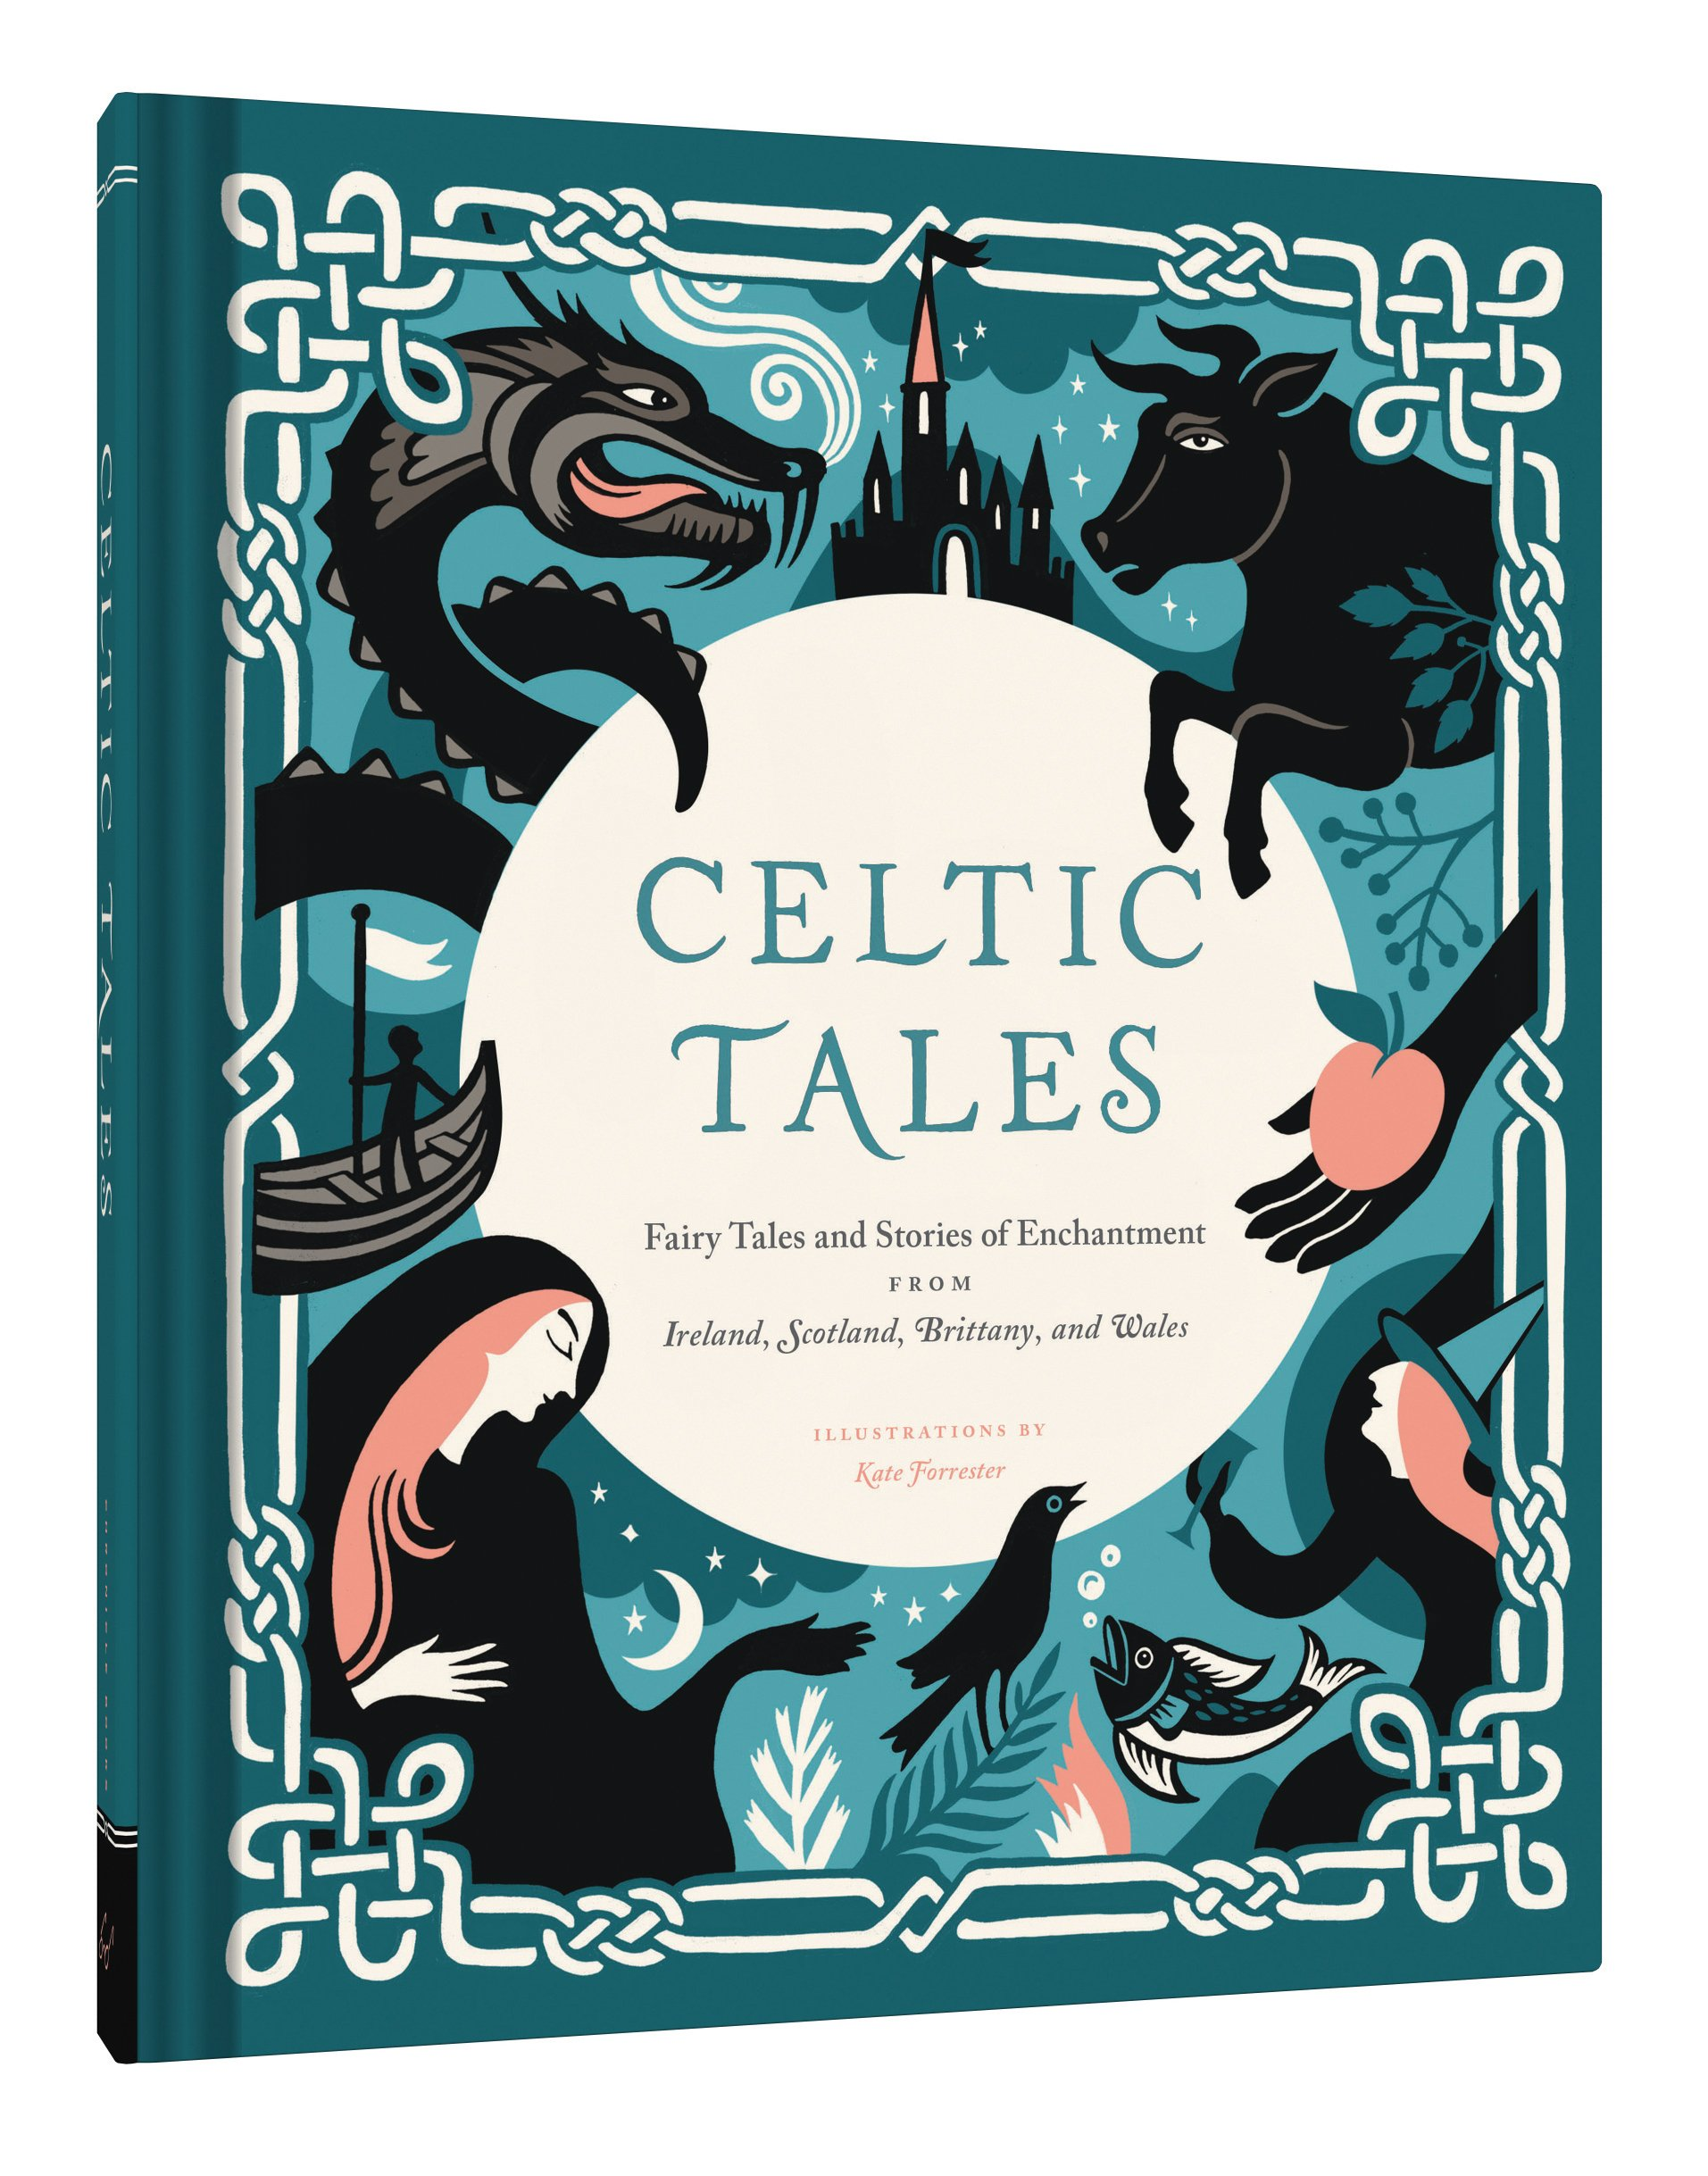 amazoncom celtic tales fairy tales and stories of enchantment from ireland scotland brittany and wales 9781452151755 kate forrester books